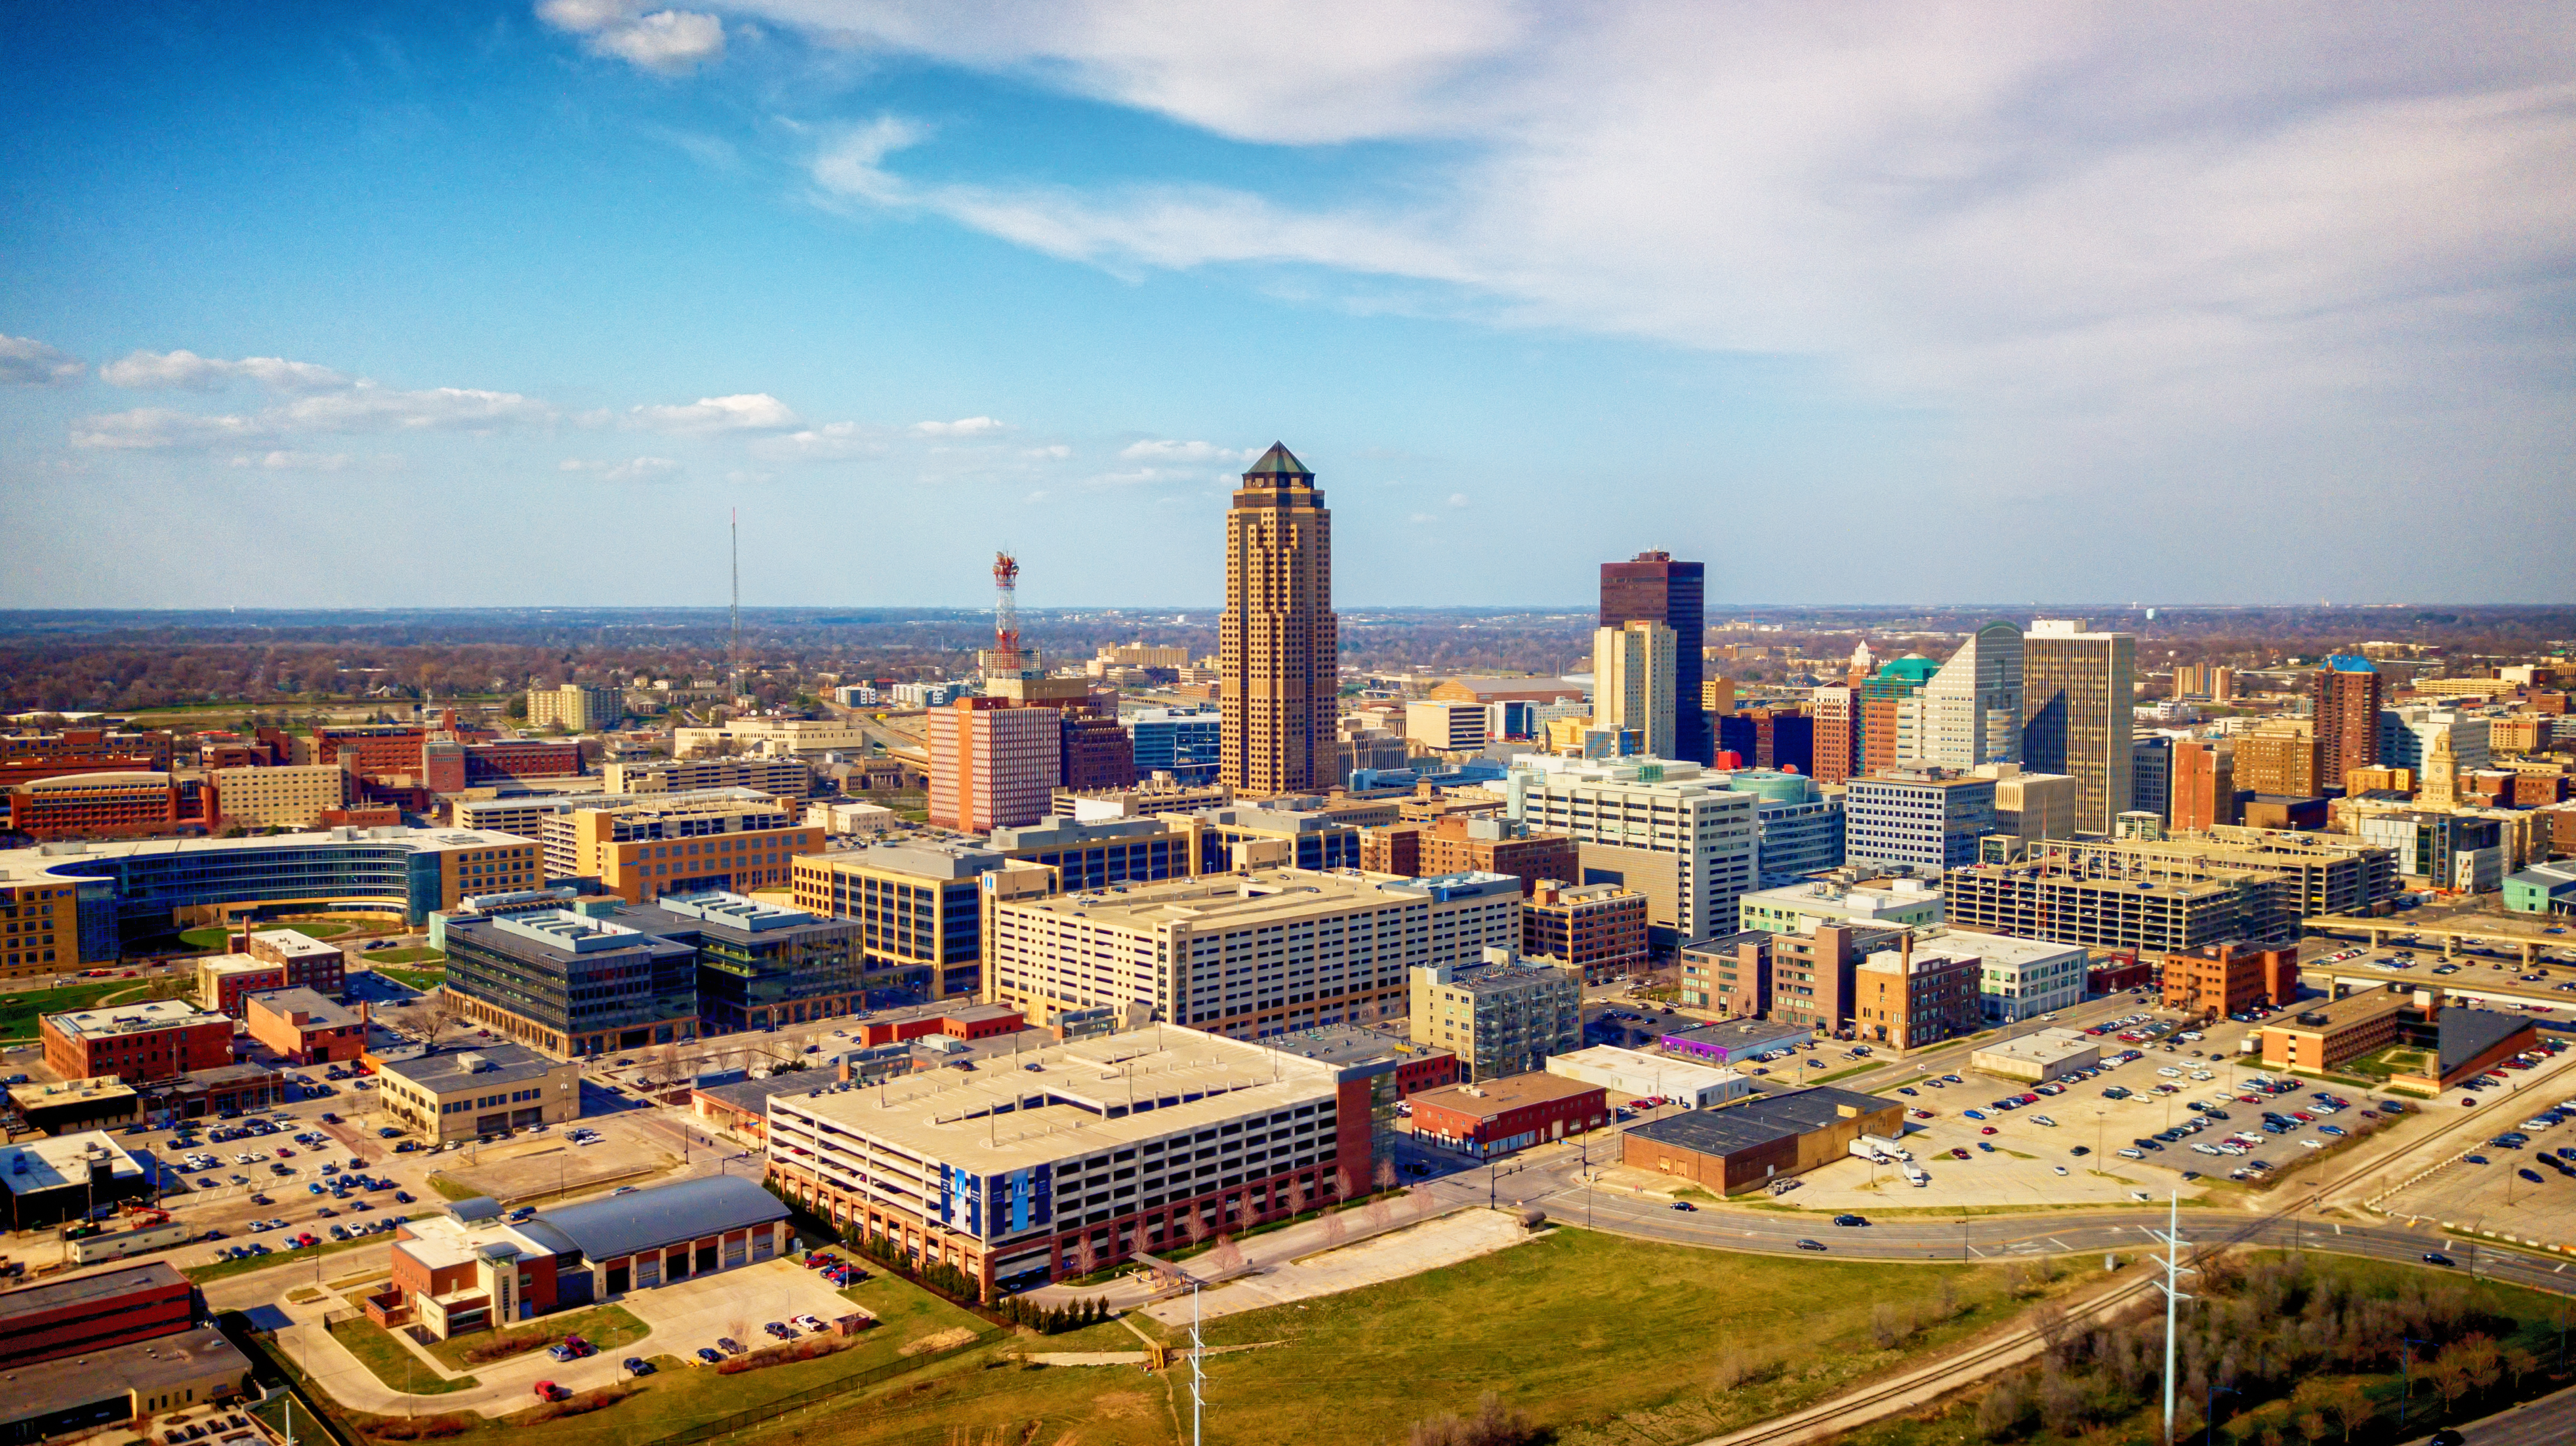 The colorful skyline of Des Moines, Iowa is seen in the foreground of farmland and a bright blue sky.